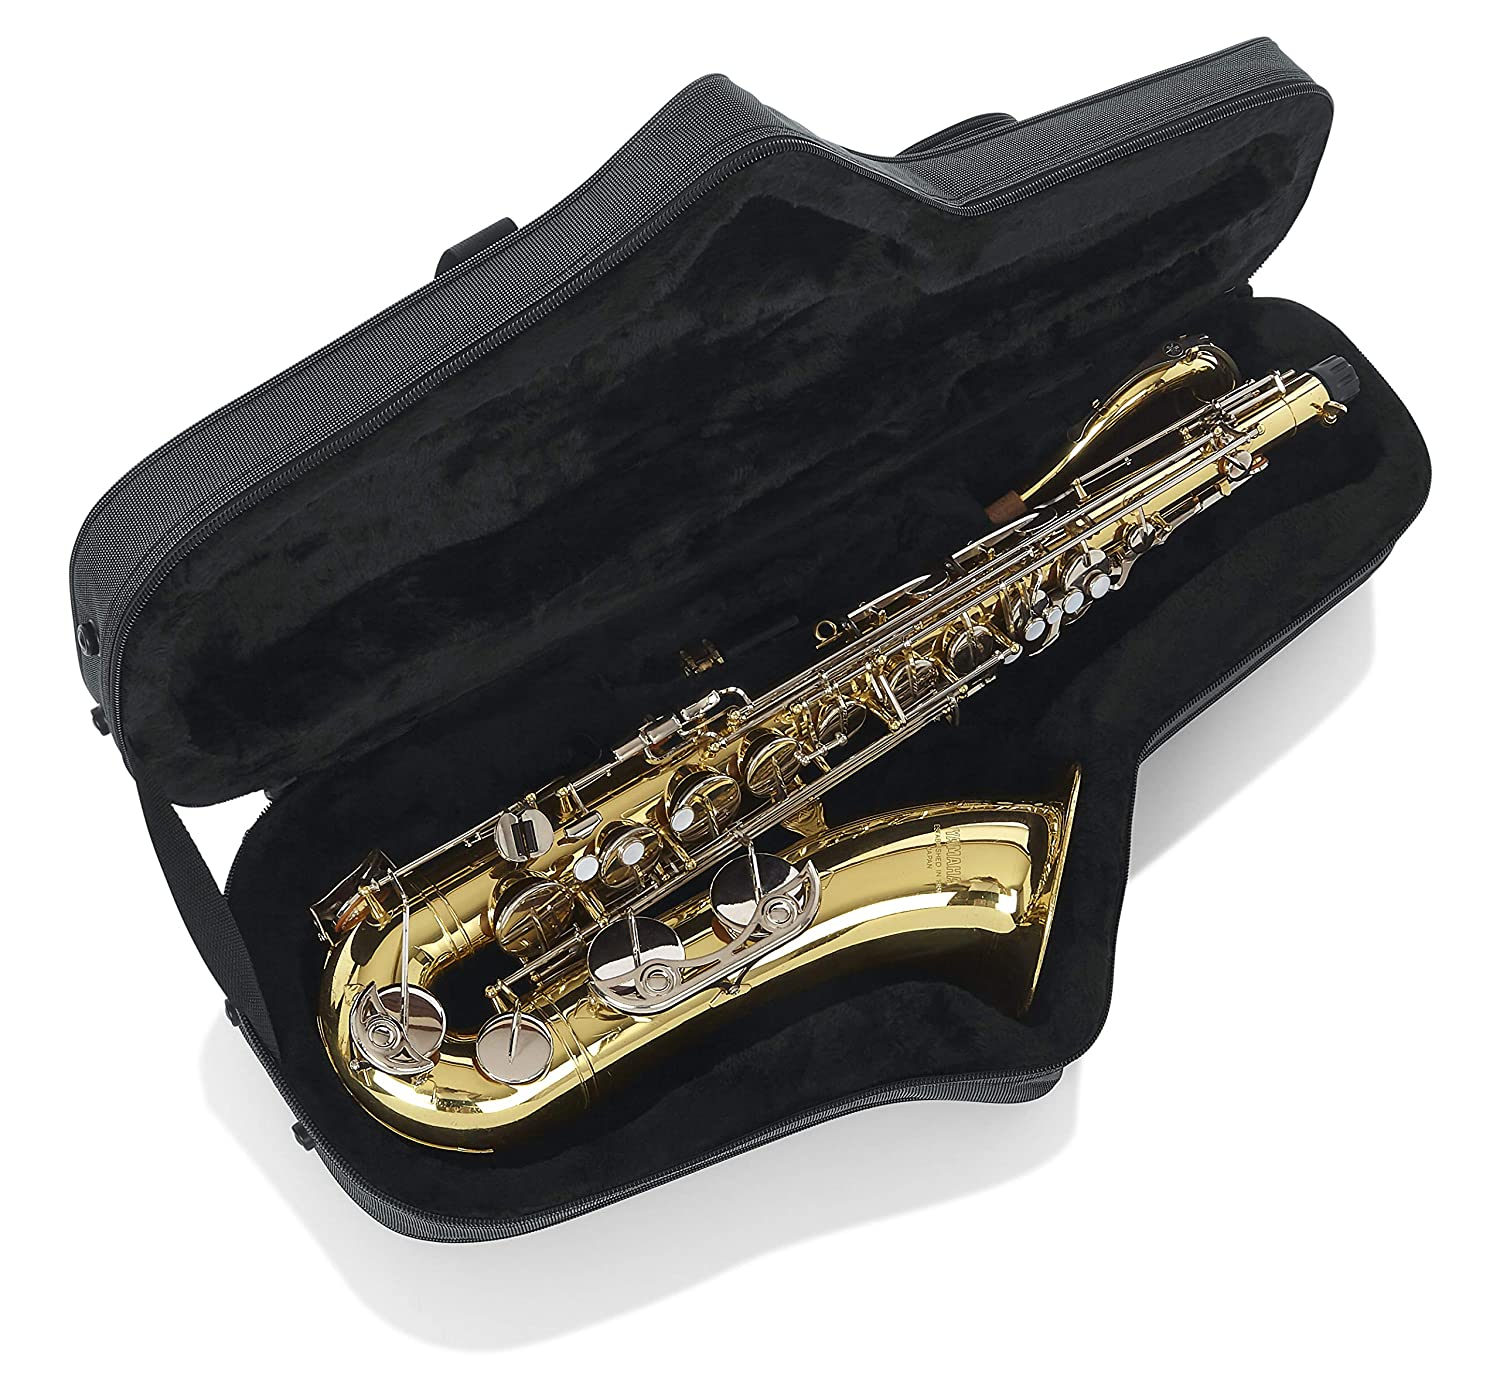 GL-TENORSAX-A Gator Cases Lightweight Polyfoam Tenor Saxophone Case with Removable Strap and Rubber Interlocking Carry Handle;